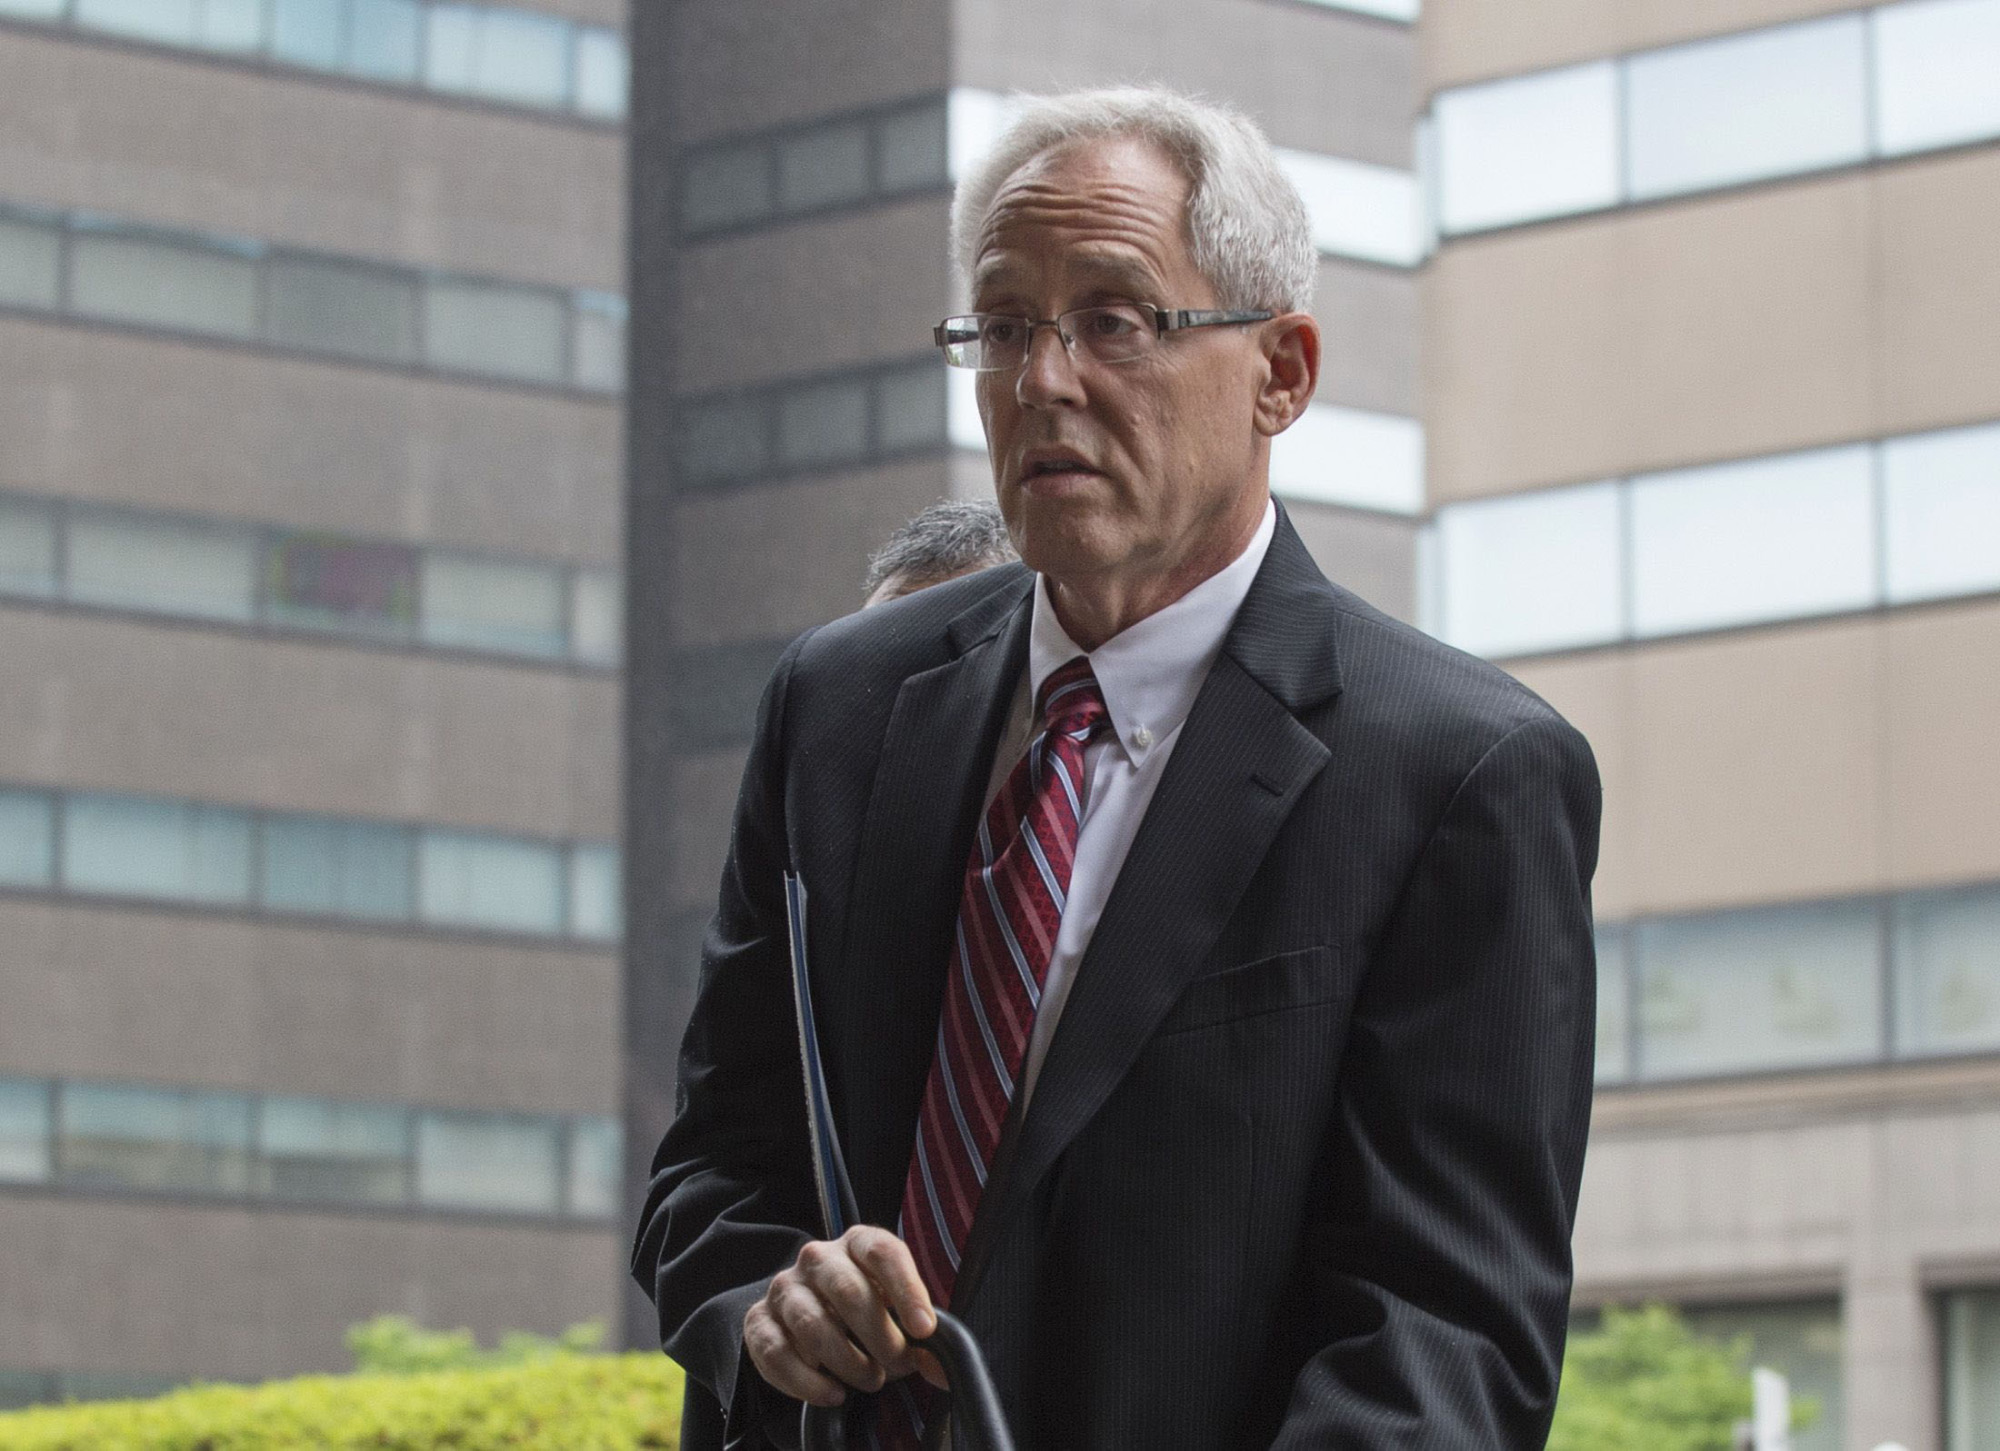 Former Nissan executive Greg Kelly arrives for a pretrial hearing at the Tokyo District Court on June 24. | GETTY IMAGES VIA BLOOMBERG